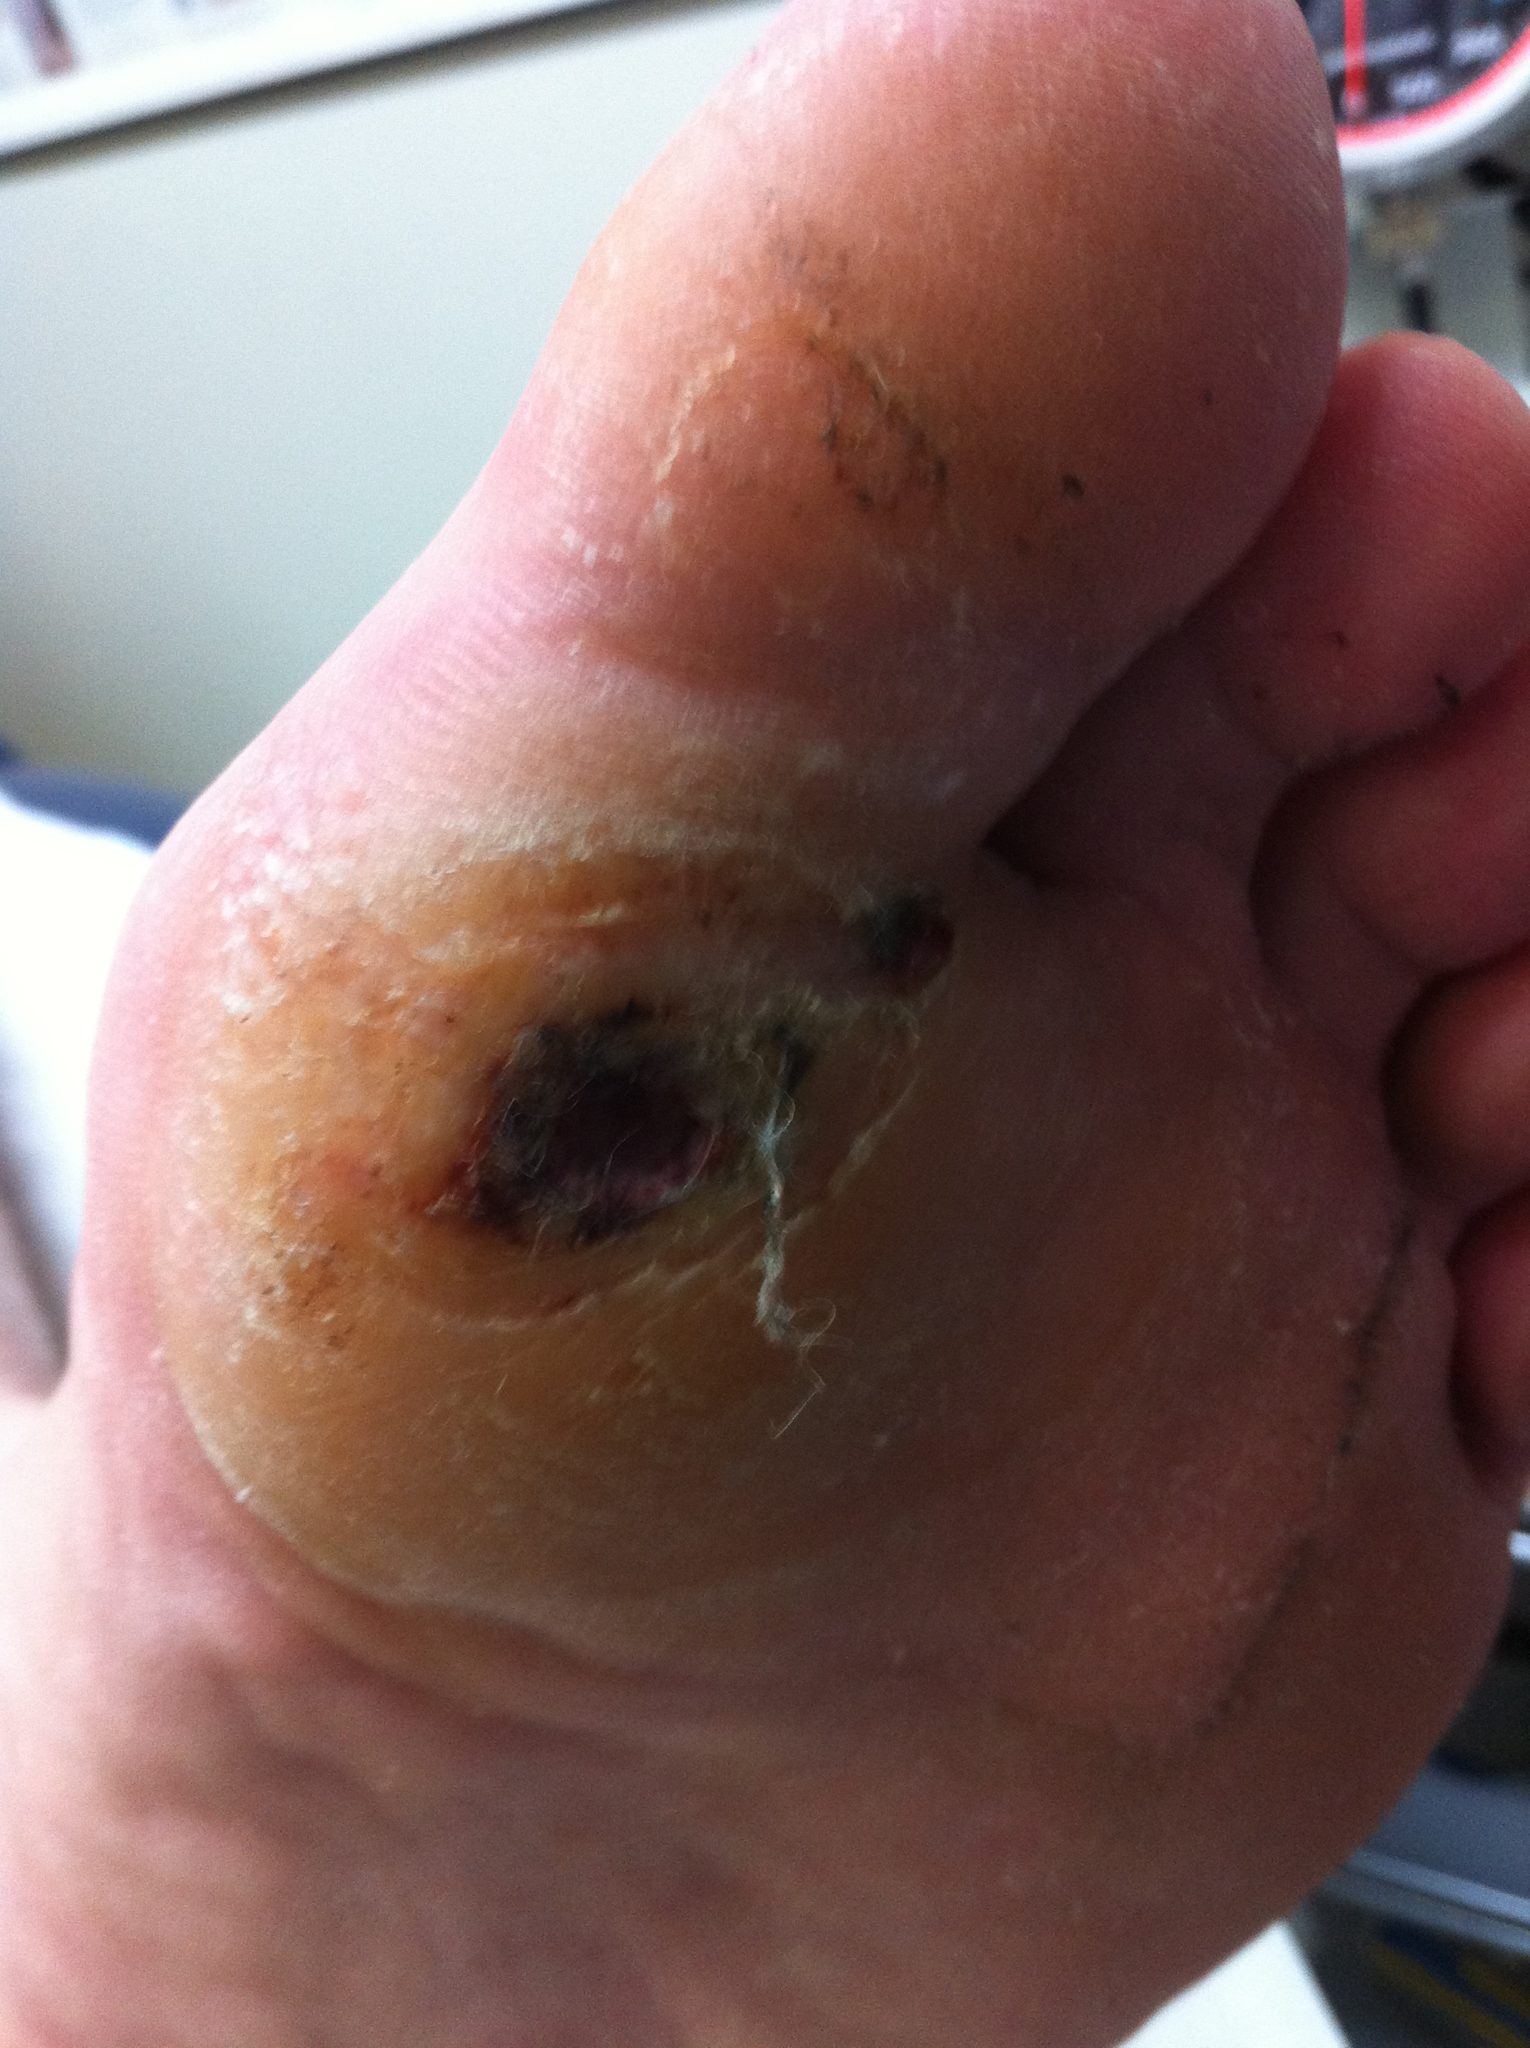 A painless ulcer developing under the big toe joint due to peripheral neuropathy